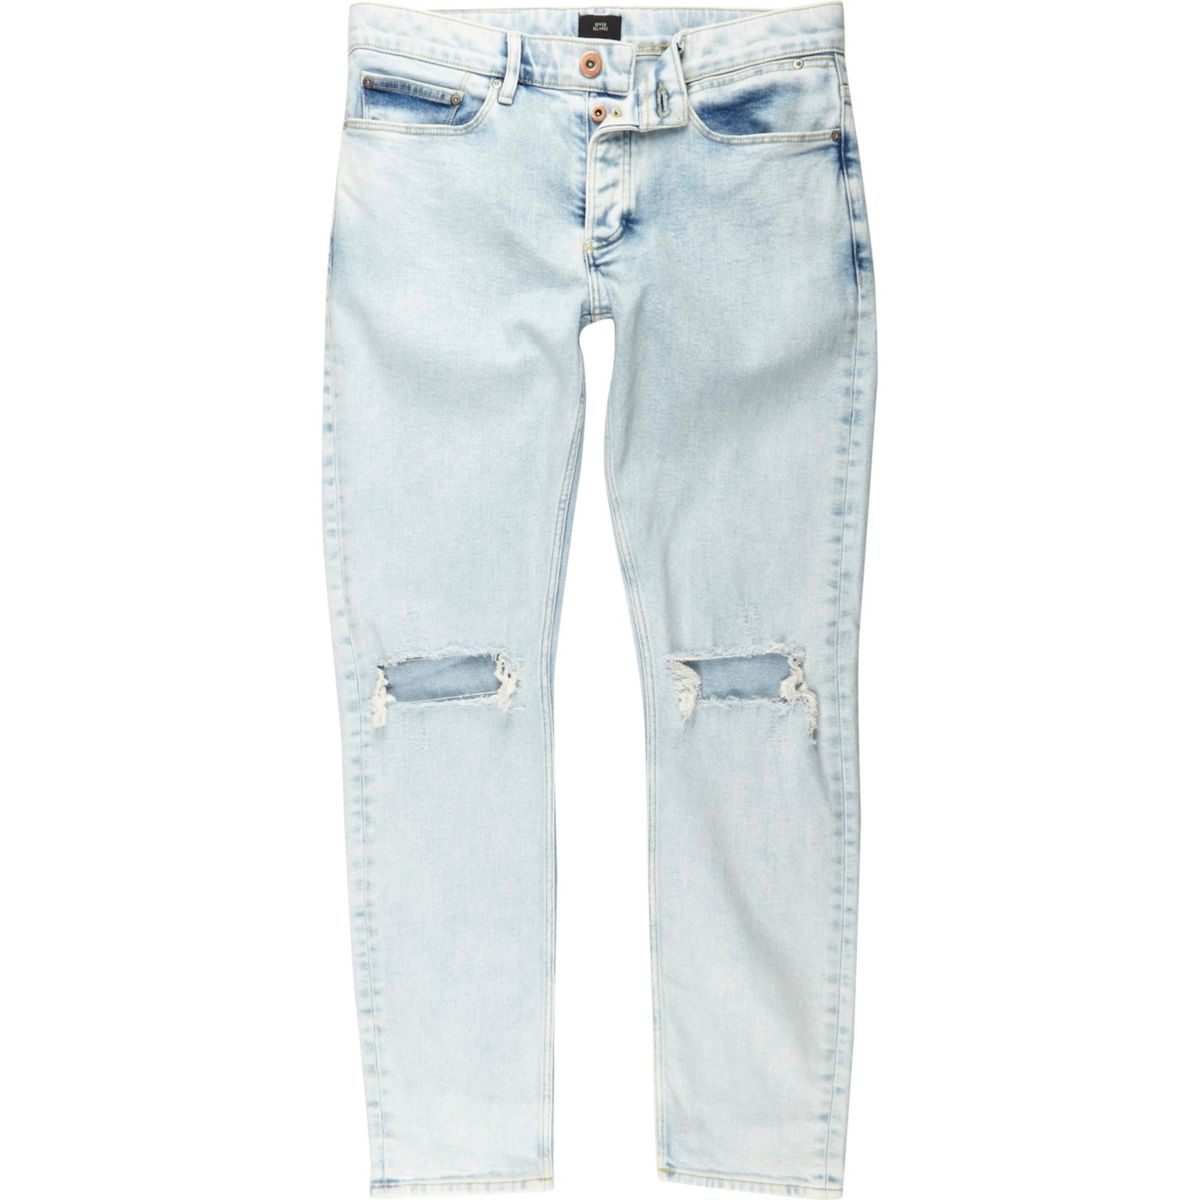 Light blue ripped knee skinny jeans